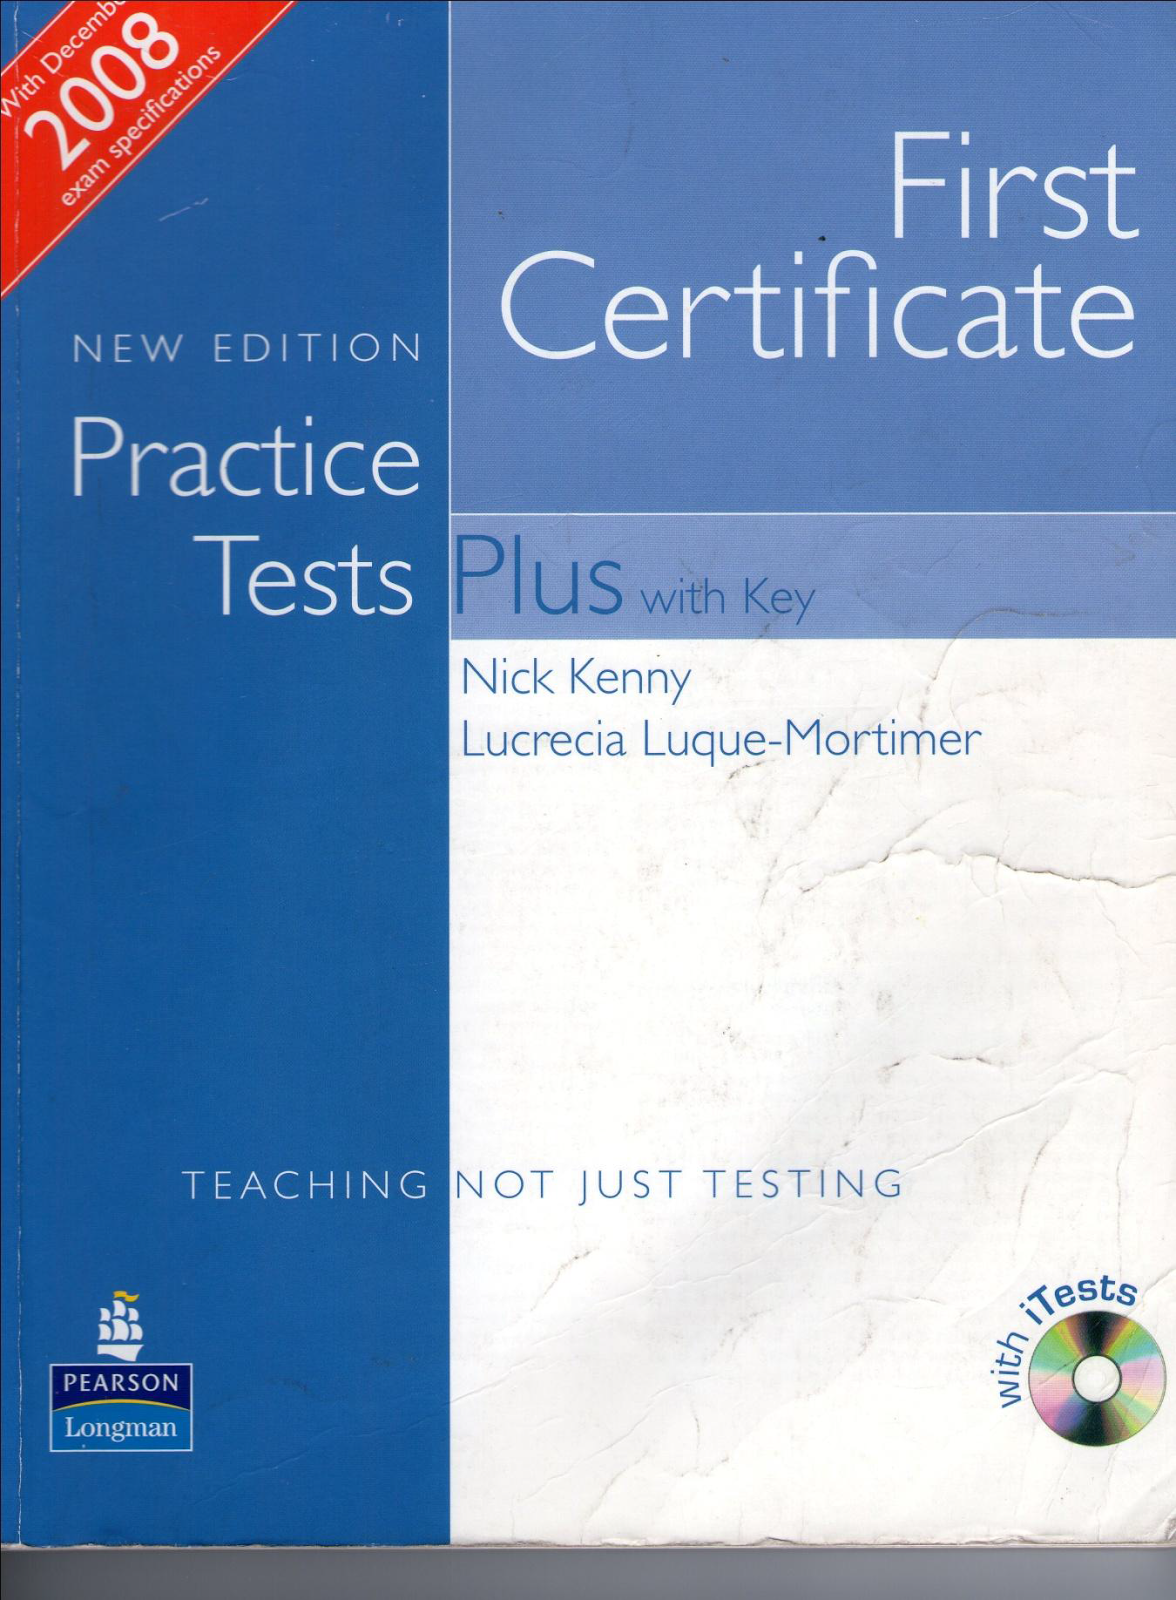 Ebook first certificate practice tests plus new edition with key ebook first certificate practice tests plus new edition with key pdf audio fandeluxe Images